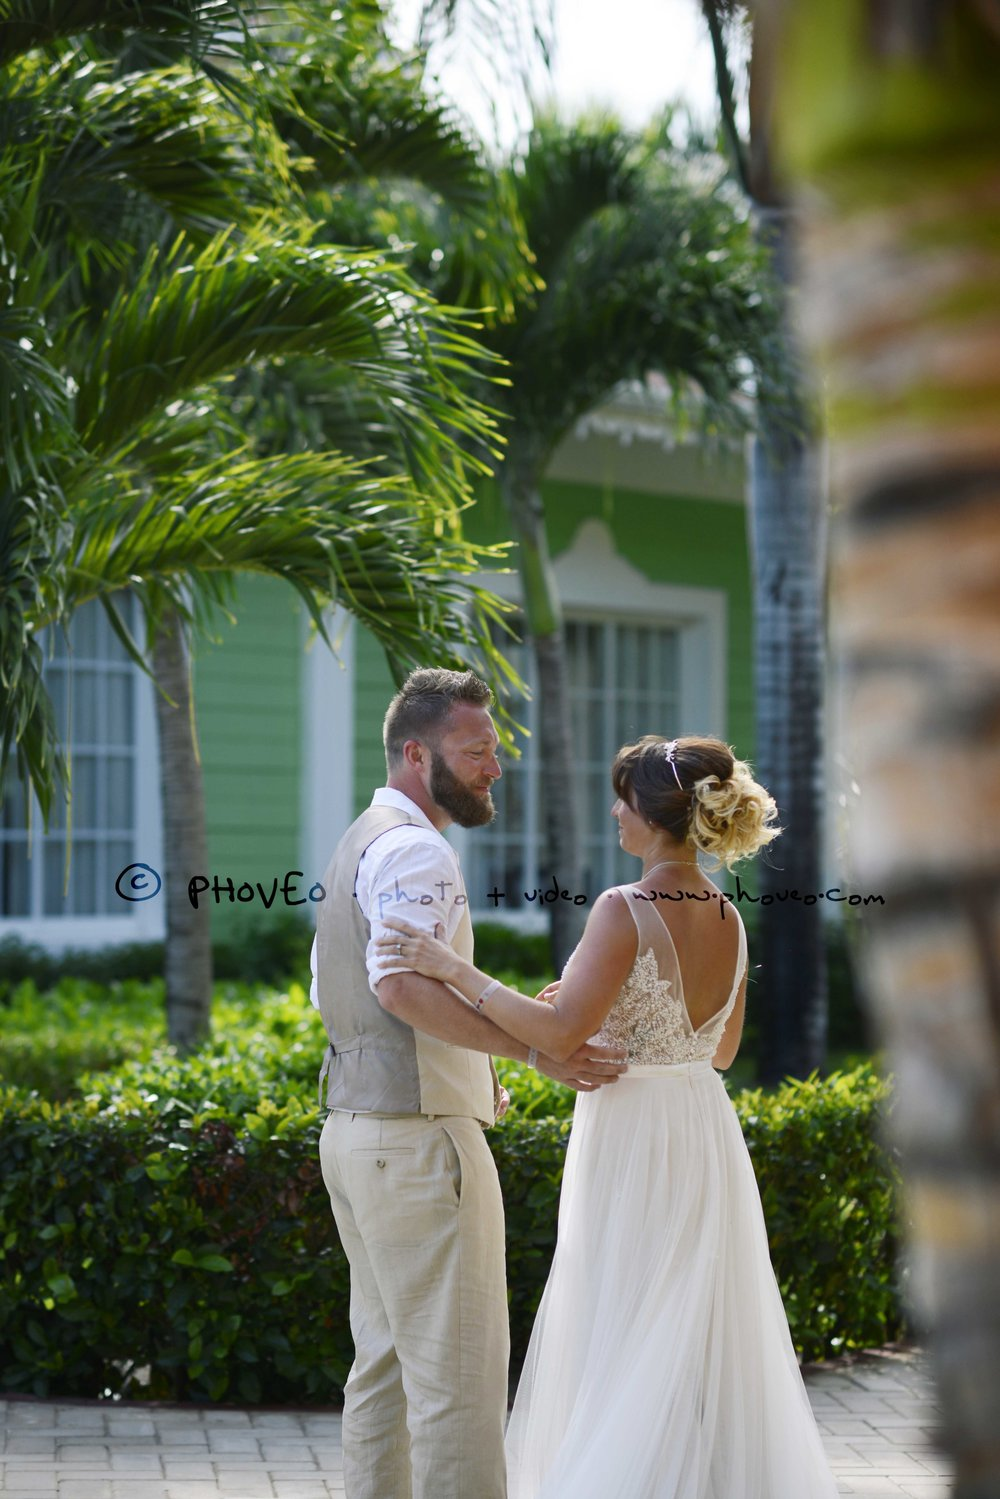 WM_20160923_Alicia+Sean_38.jpg